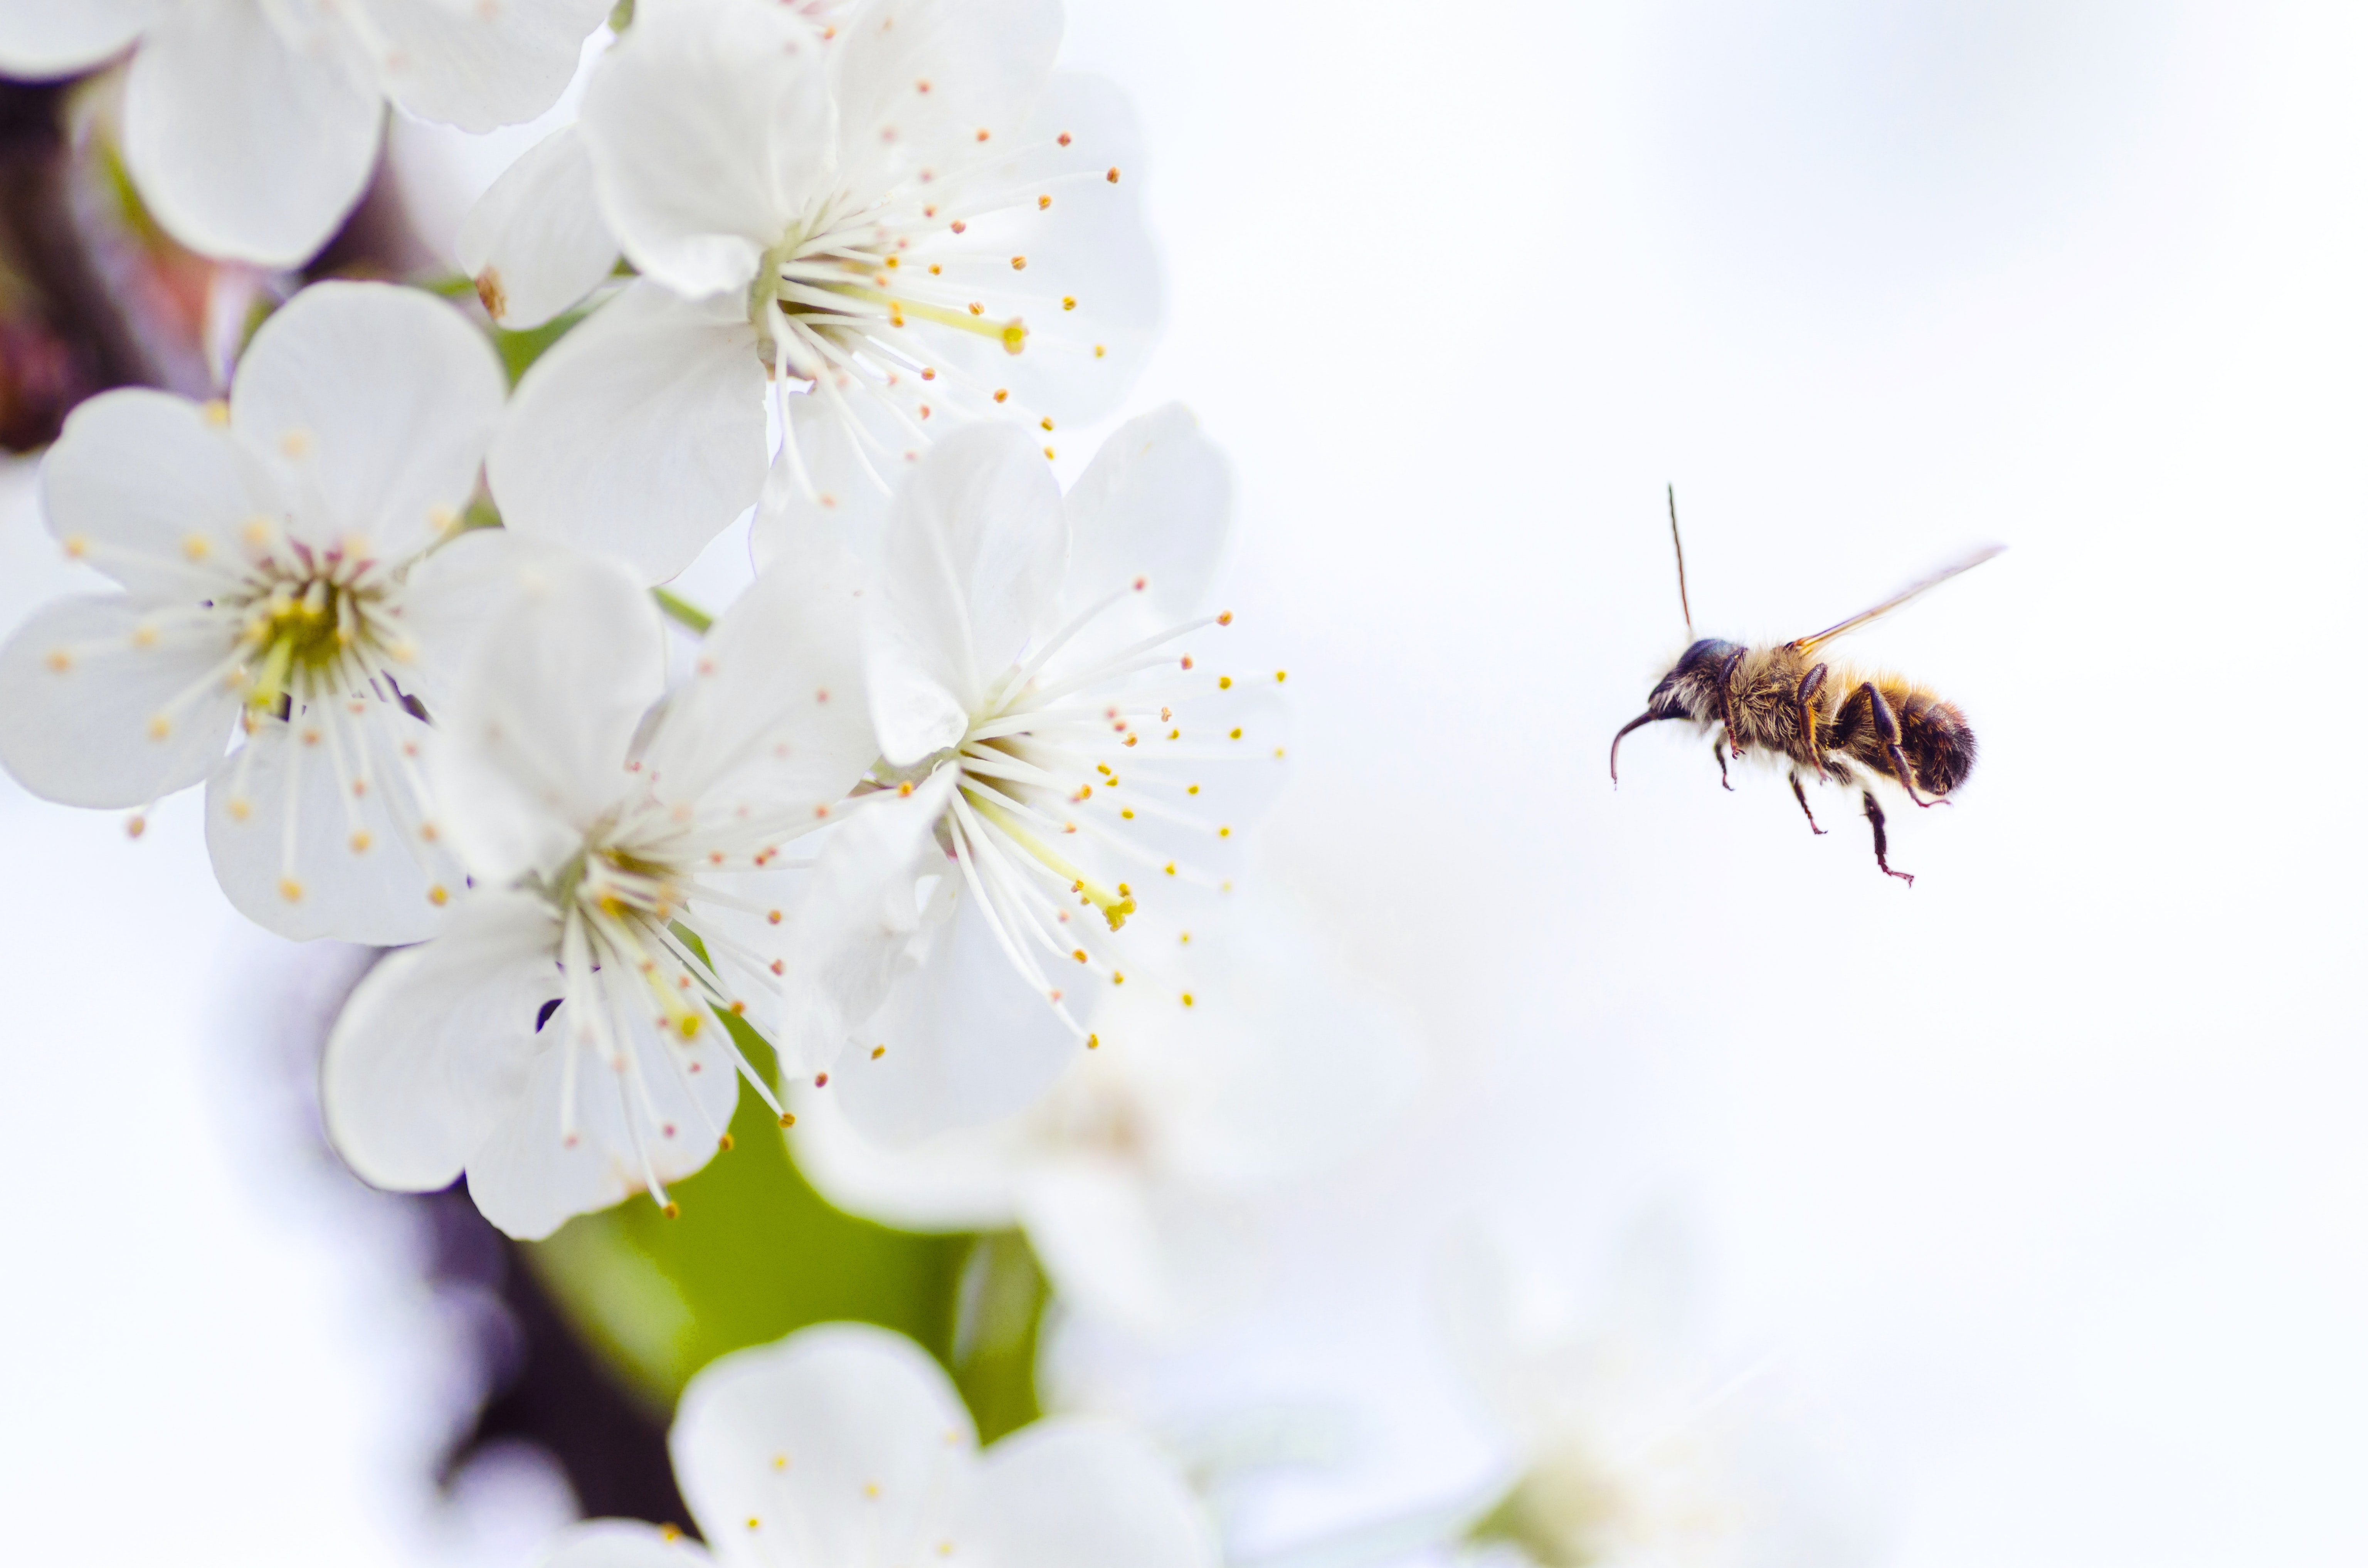 A close-up photo of a bee pollinating flowers